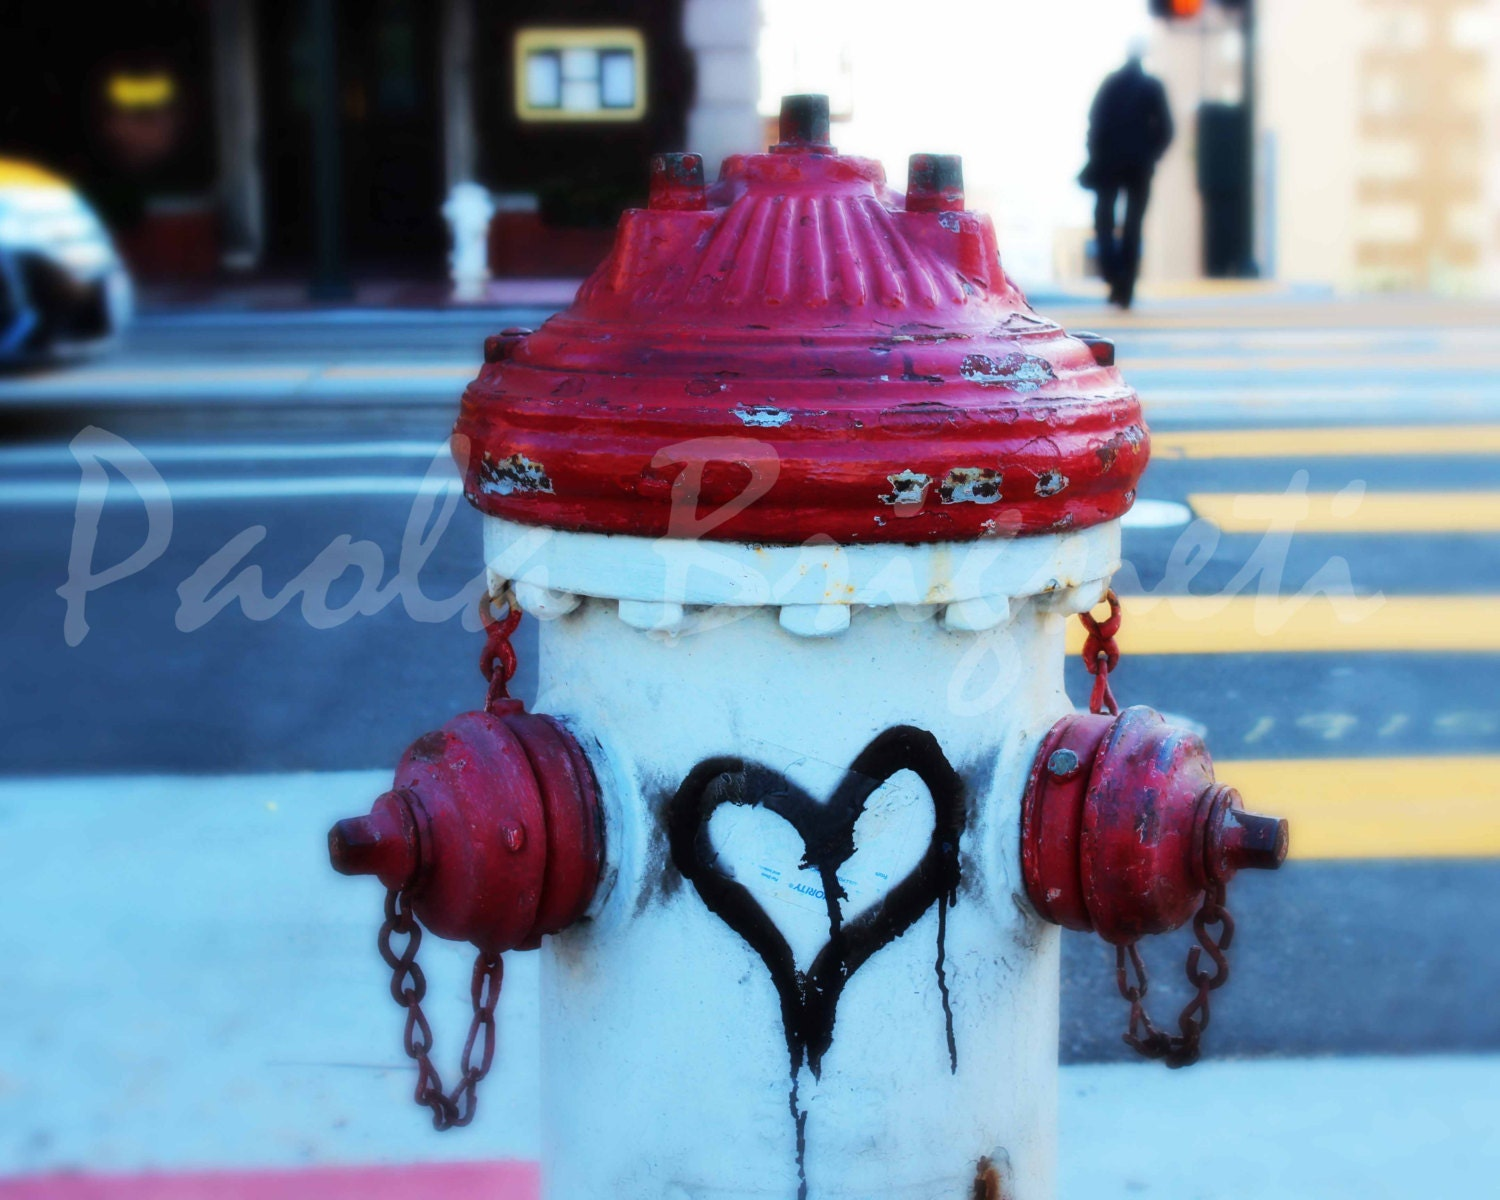 Black Heart Graffiti on Red Fire Hydrant - Valentine's Day Photography - Love - WorldPhotosByPaola